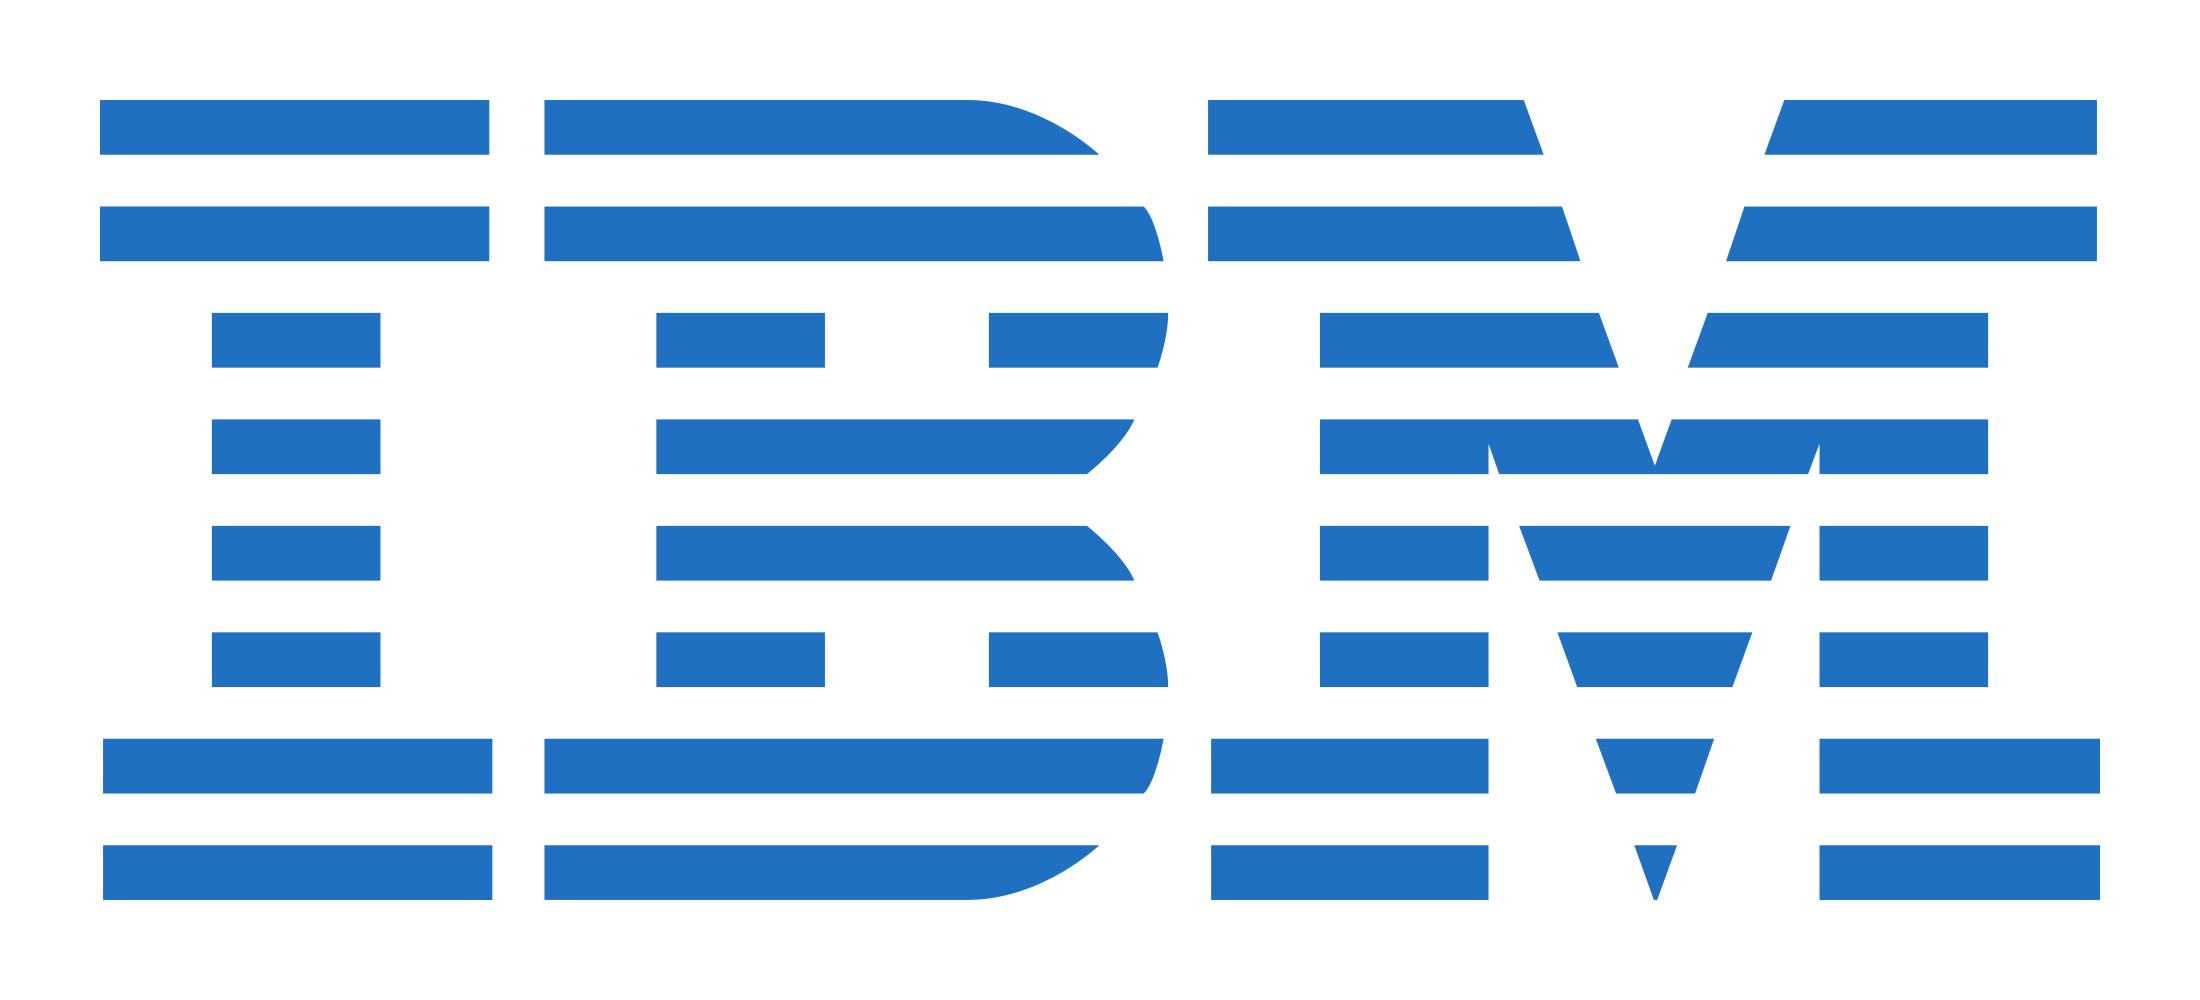 IBM Award Partner IoT Awards 2018